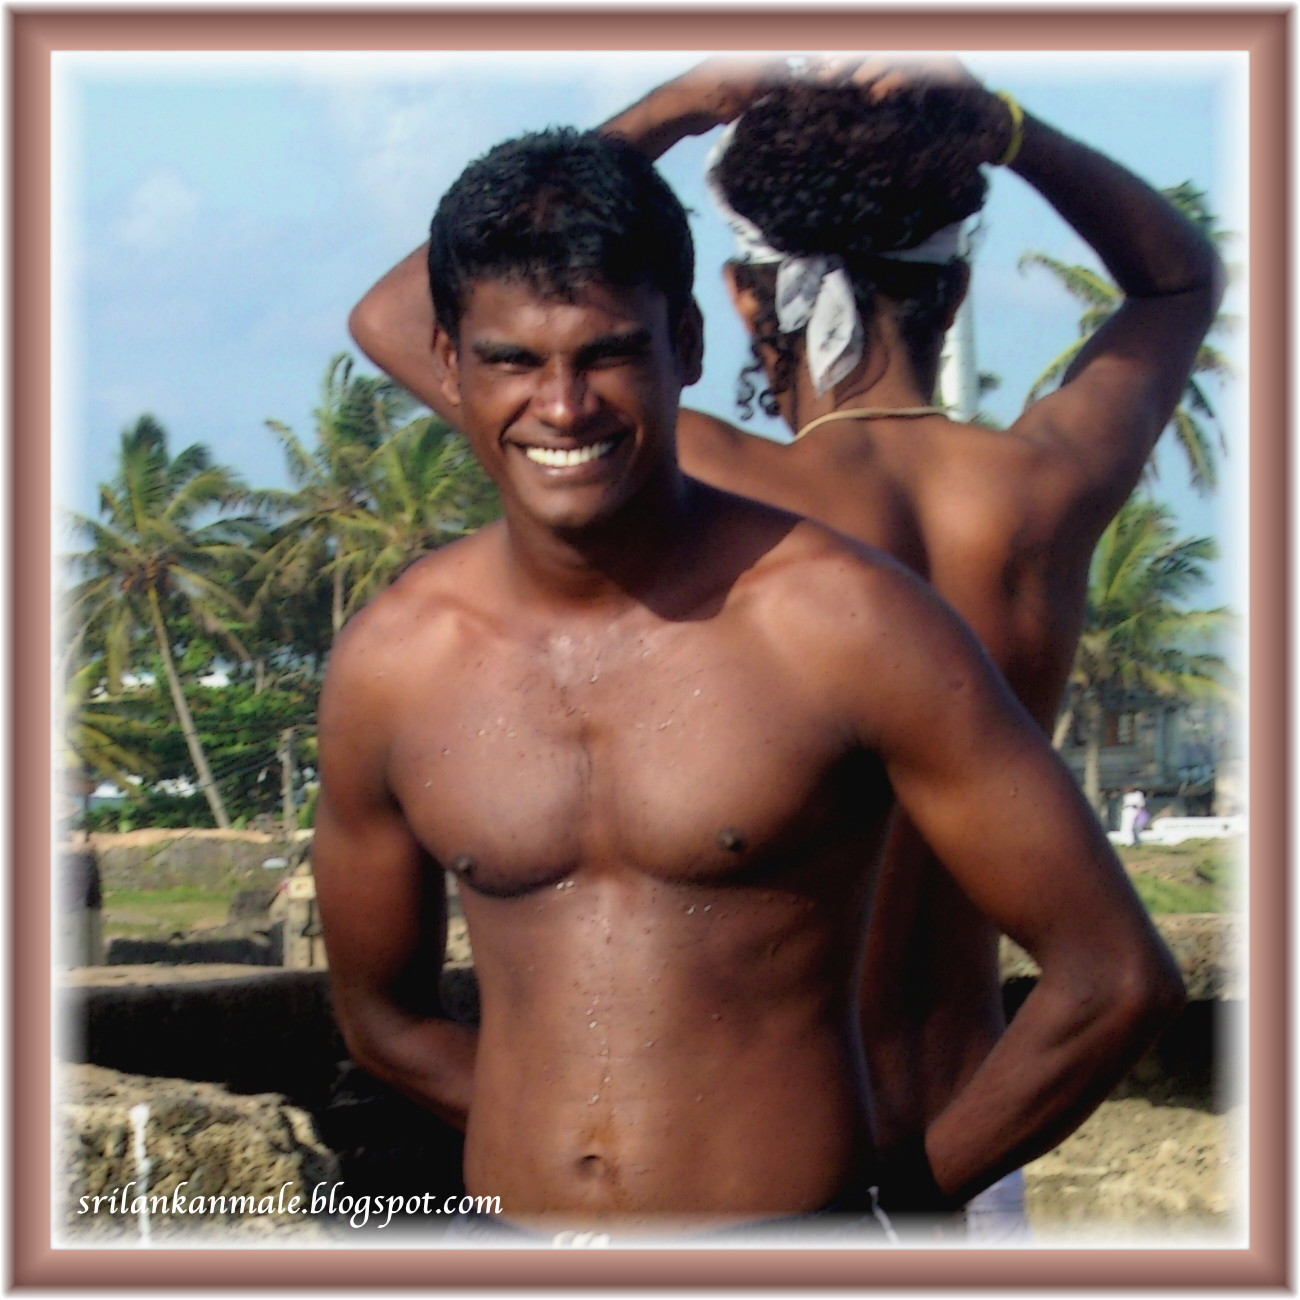 sri lankan nudes in nude beaches